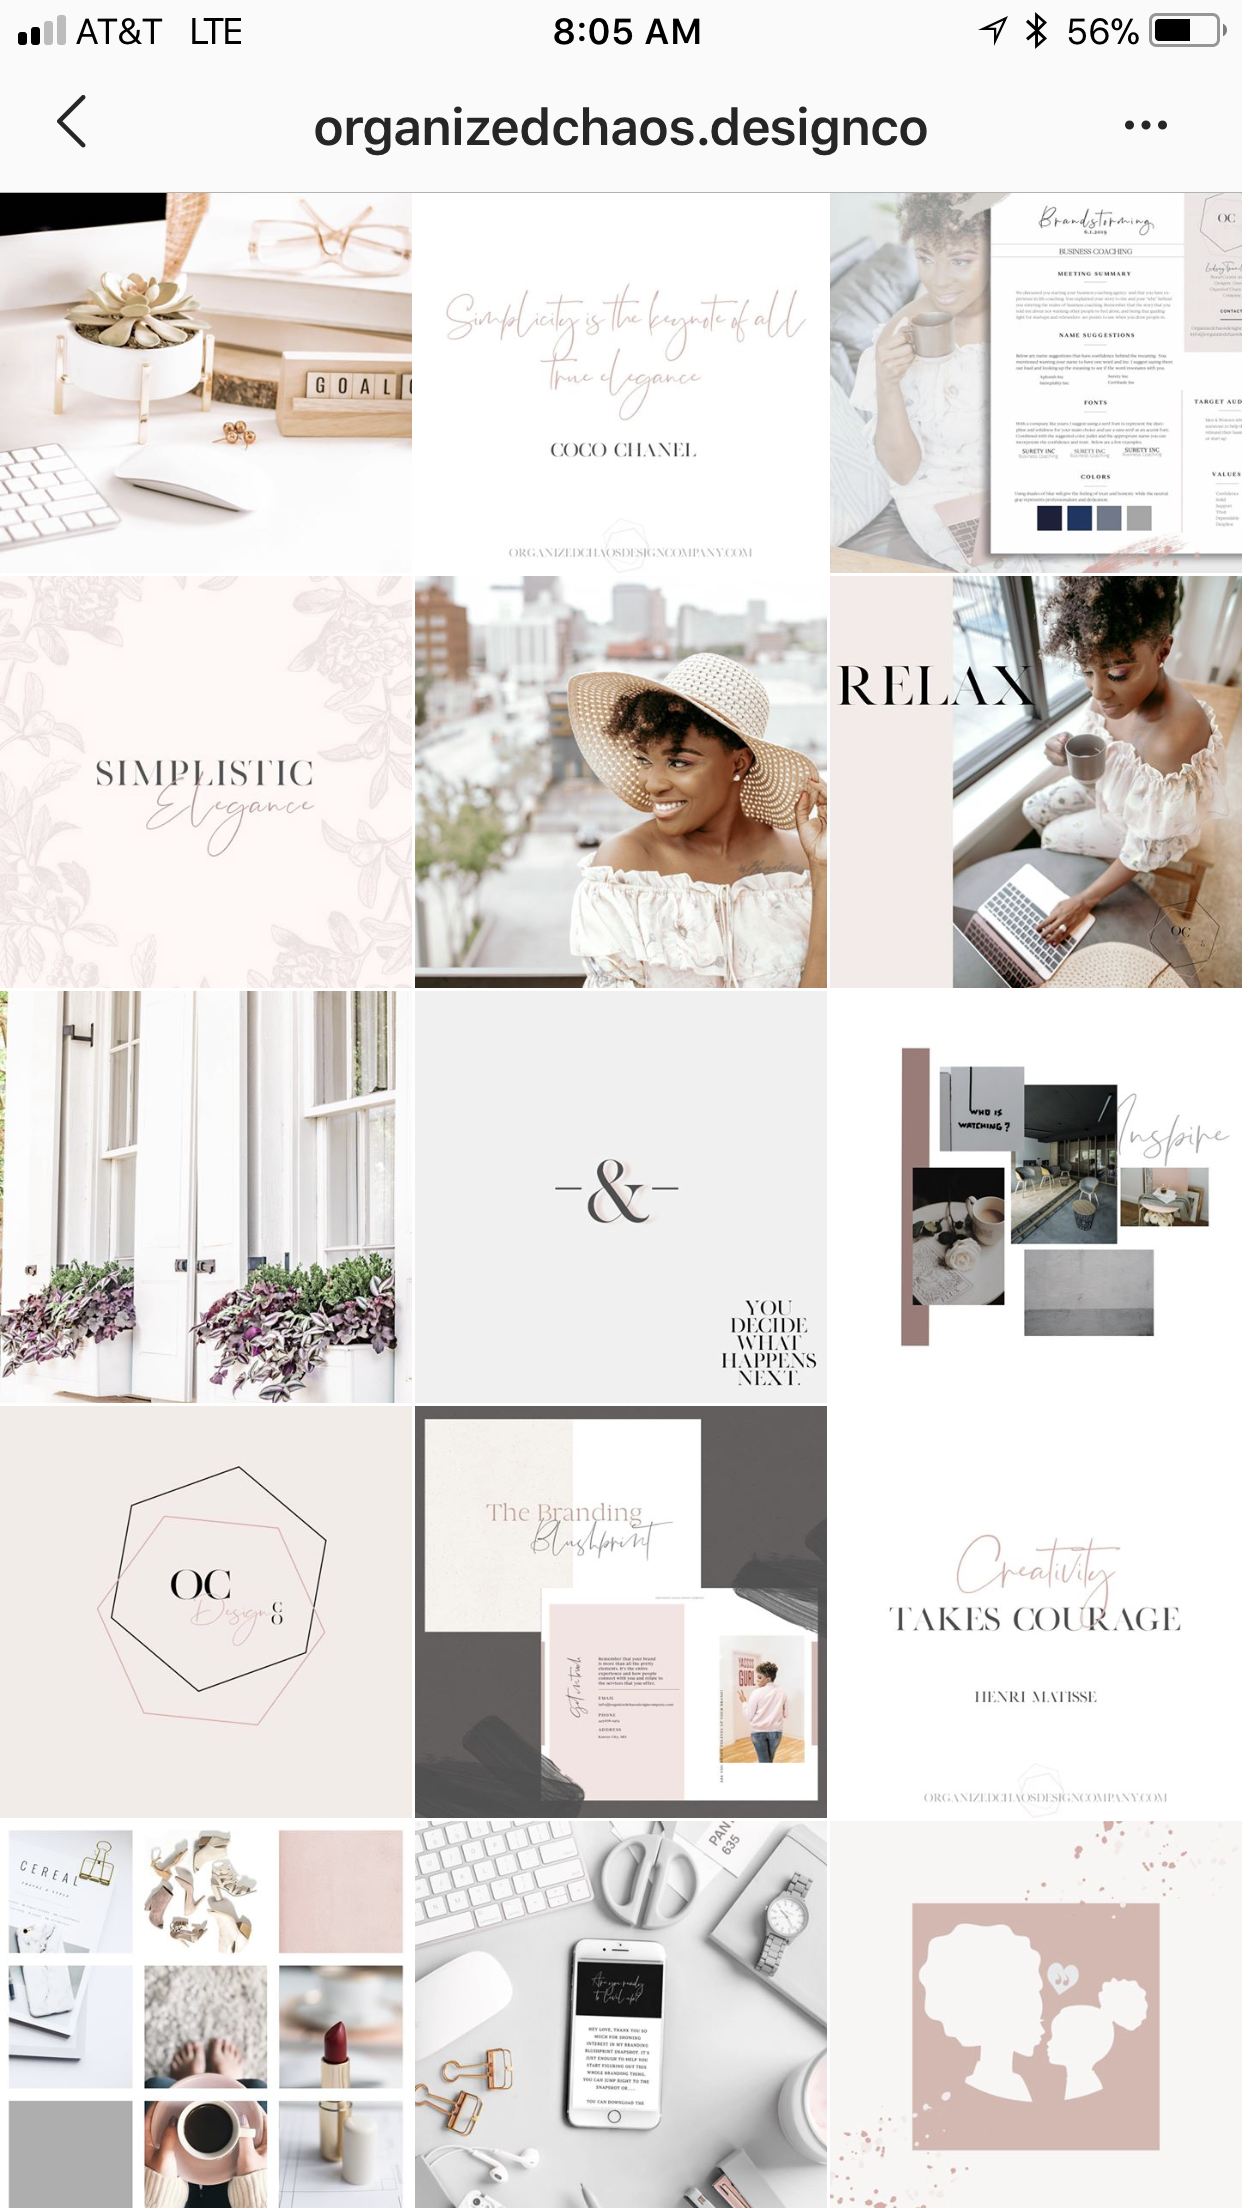 See how she mixed her images and brand elements in to create a gorgeous cohesive feed! -